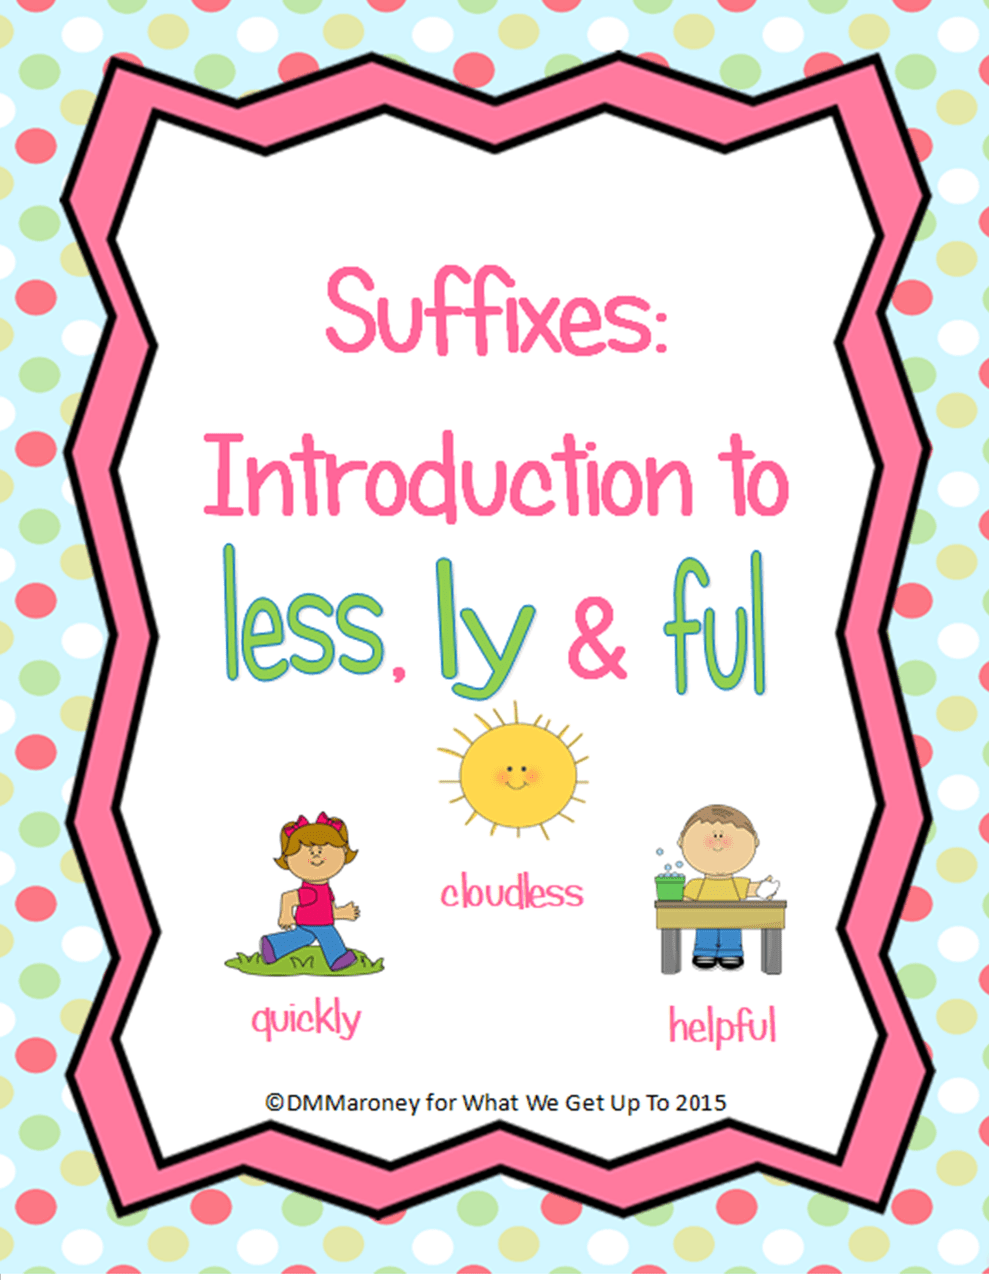 medium resolution of Suffixes: Introduction to less